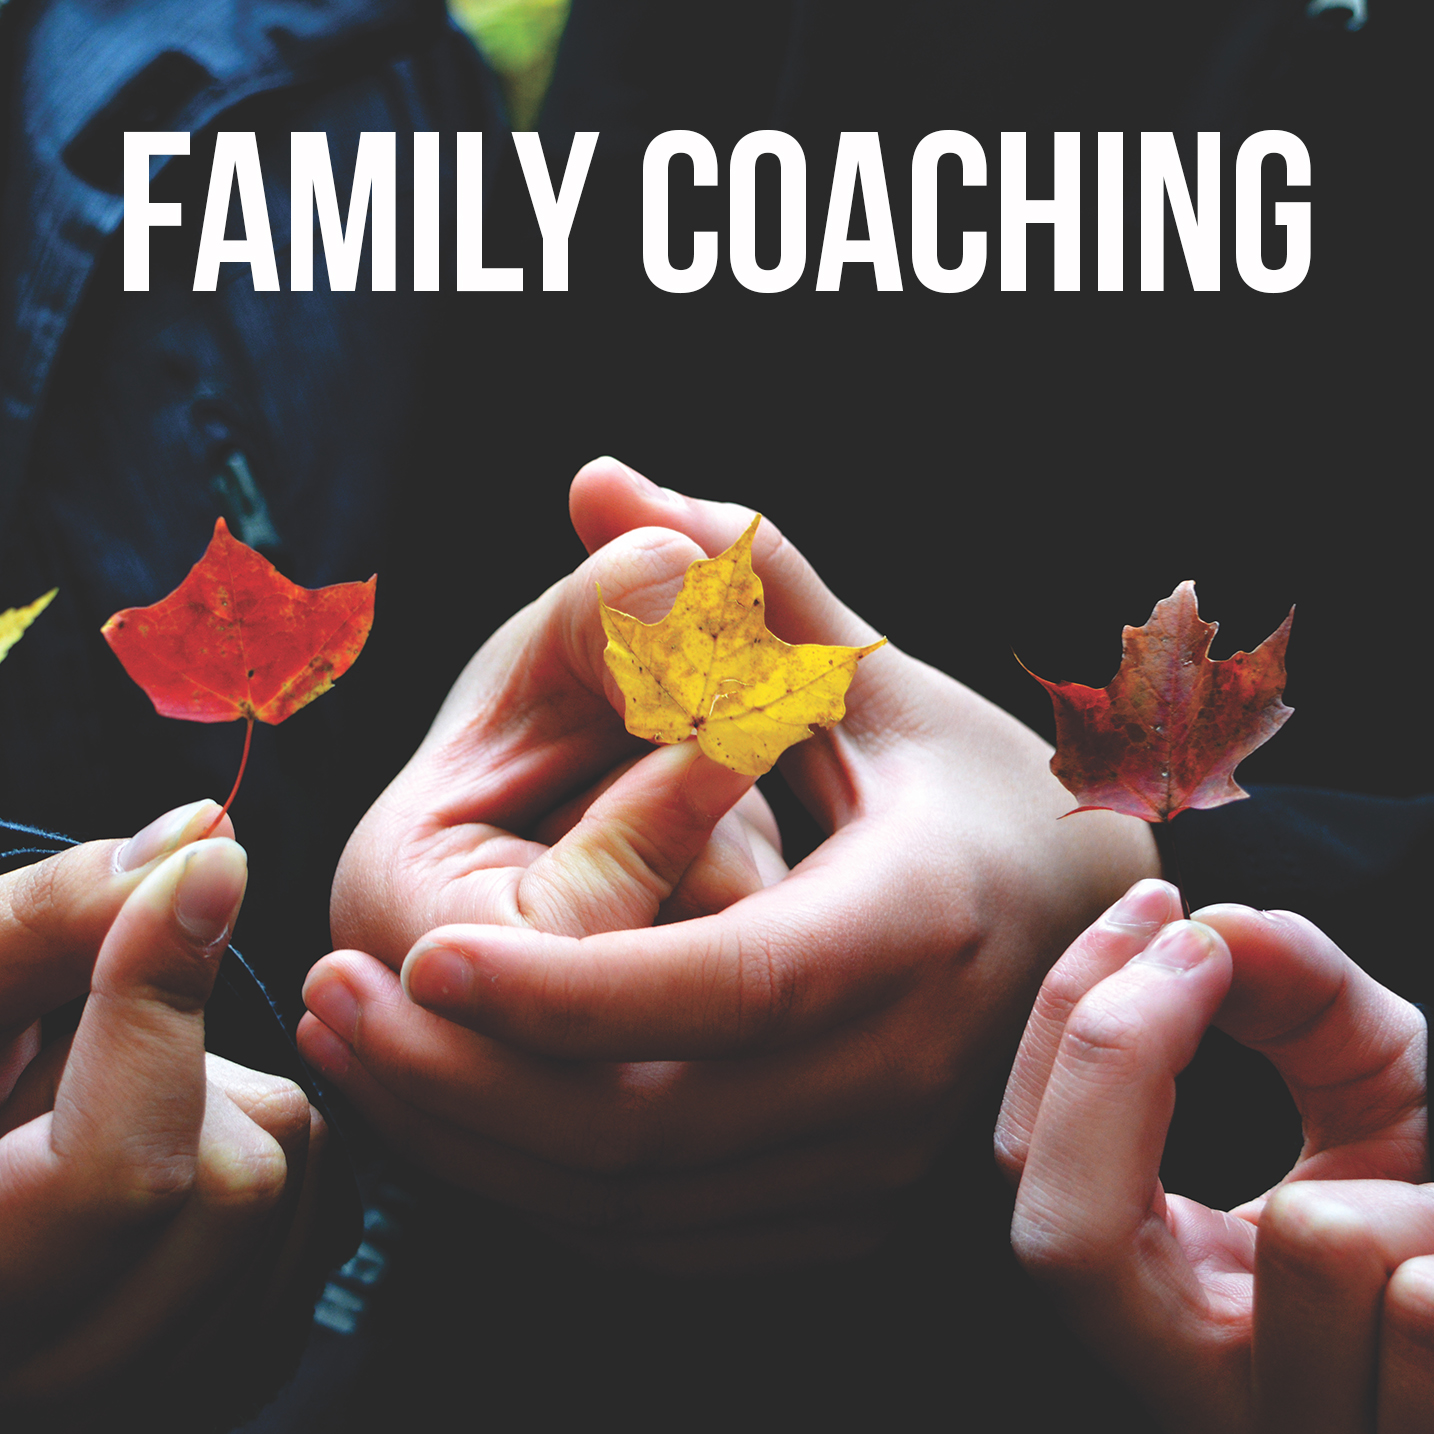 Health Coach Family Coaching